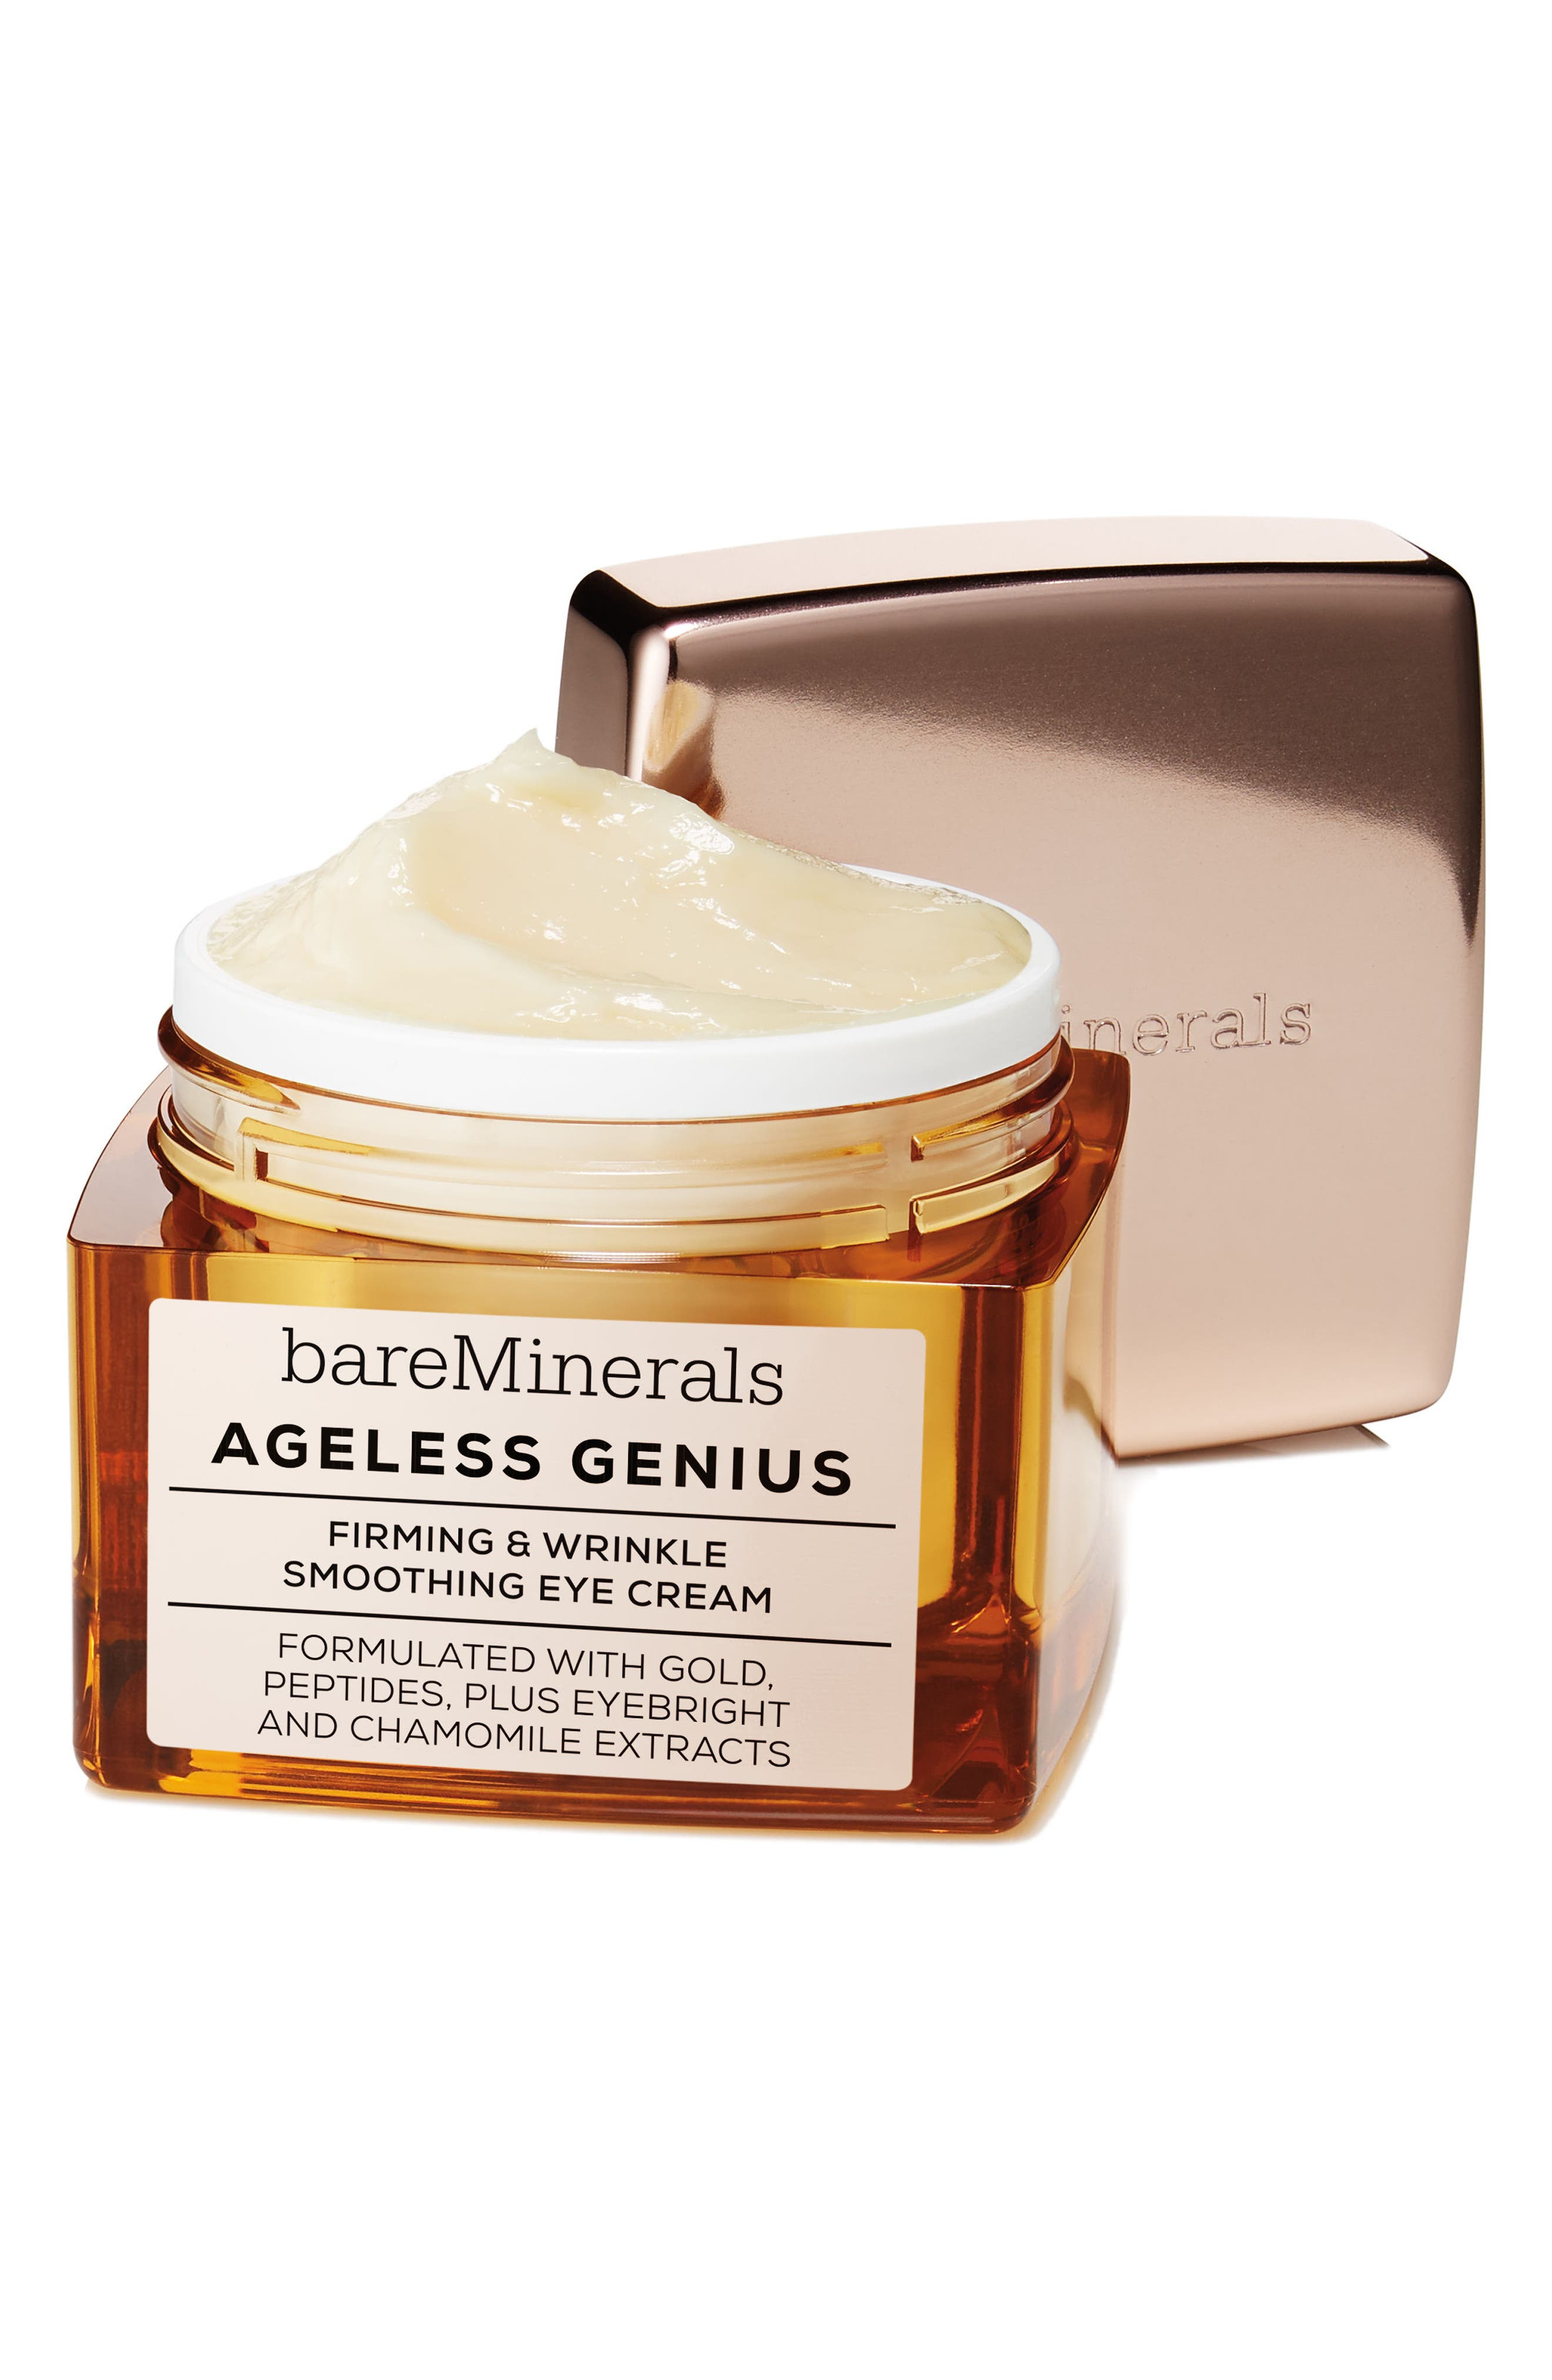 Ageless Genius Firming & Wrinkle Smoothing Eye Cream,                             Alternate thumbnail 3, color,                             No Color